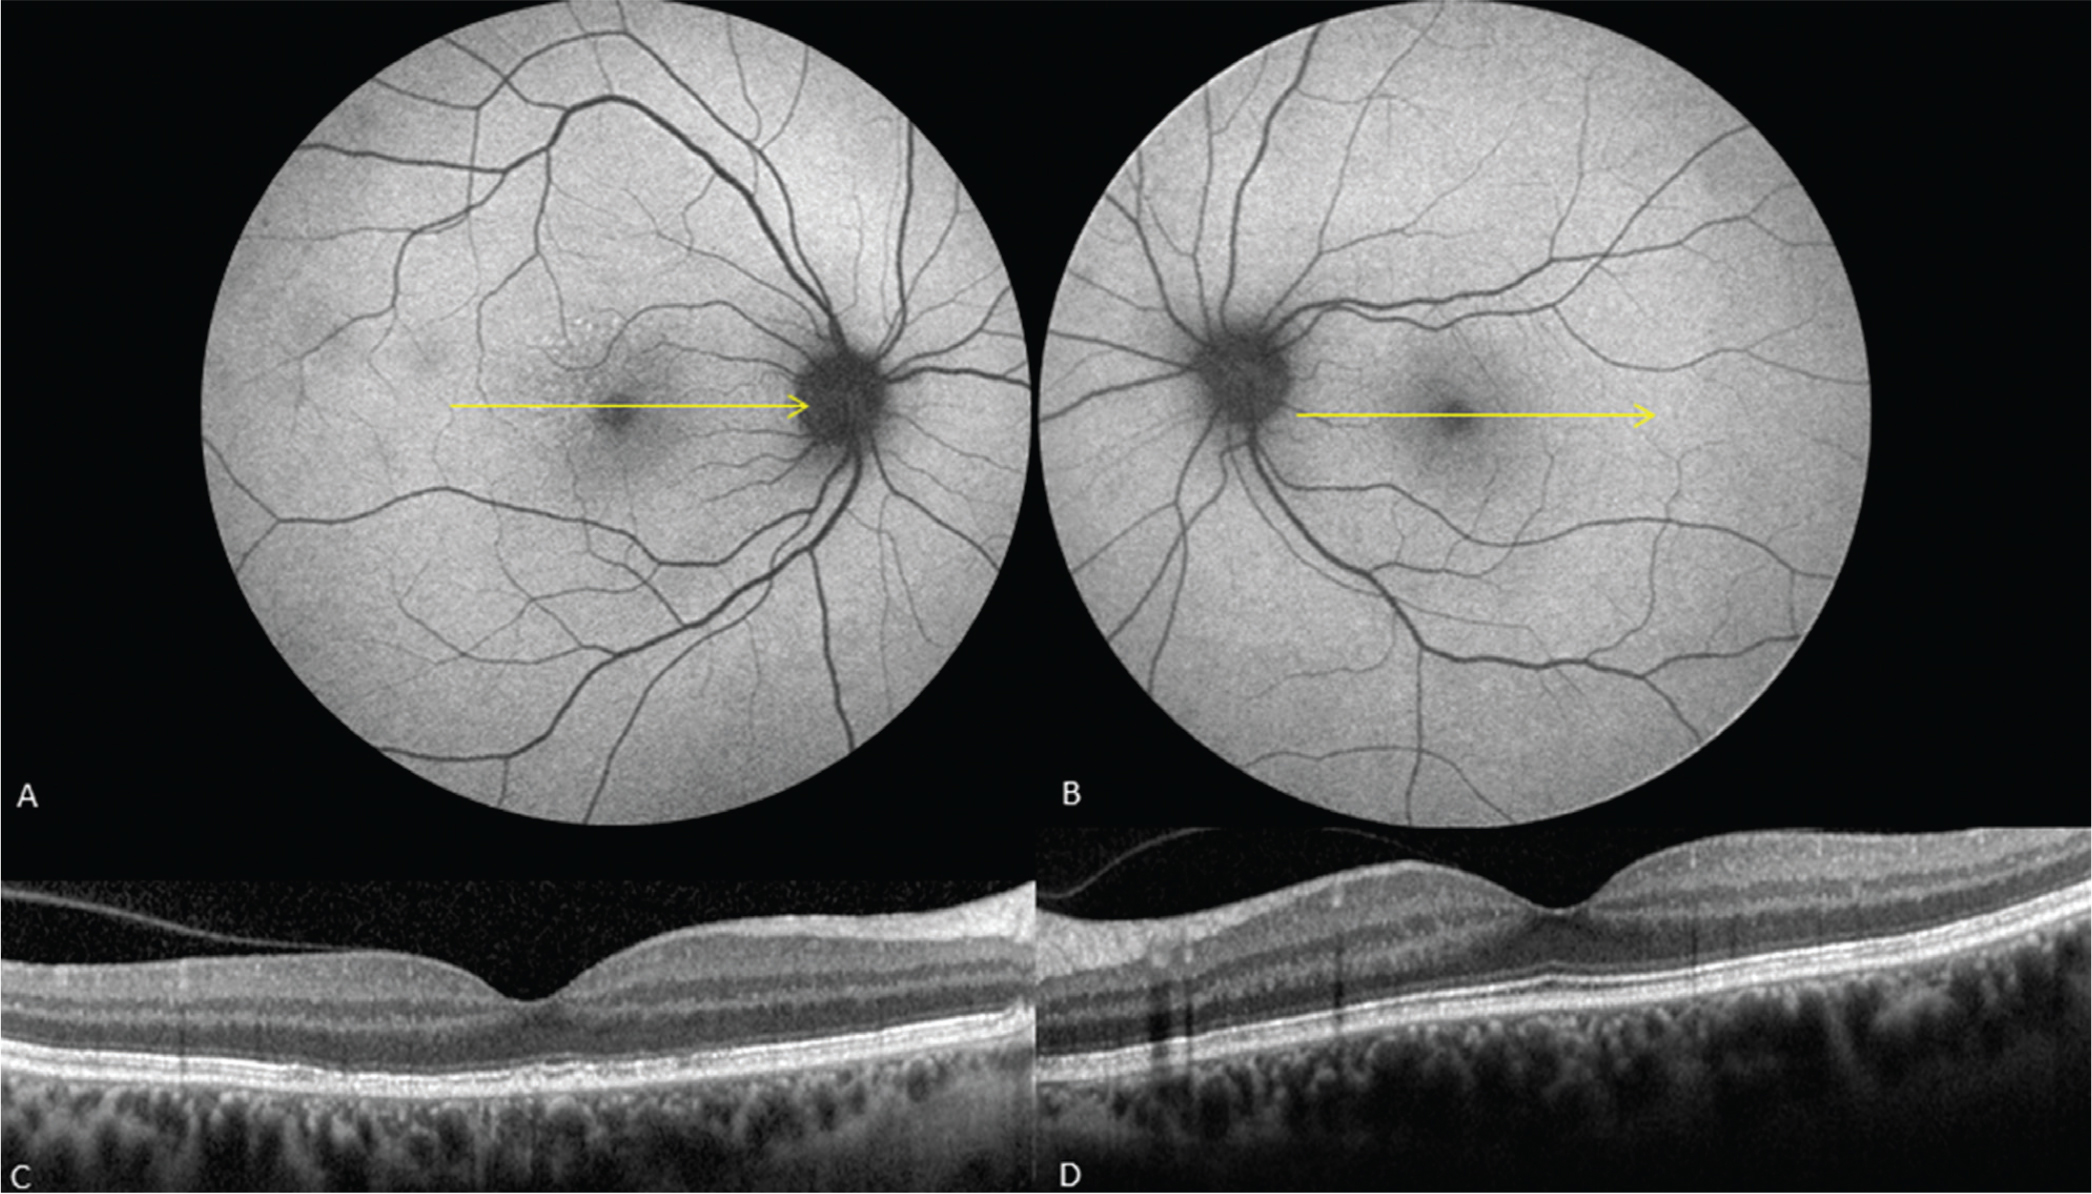 Post-treatment 5-week follow-up. (A, B) Fundus autofluorescence reveals near complete resolution of the hyperautofluorescent spots. (C, D) Optical coherence tomography (OCT) restoration of the ellipsoid zone bilaterally, and improvement in retinal pigment epithelium clumps in the right eye. The location of spectral-domain OCT B-scans is shown by yellow arrows on the corresponding fundus autofluorescent scans.